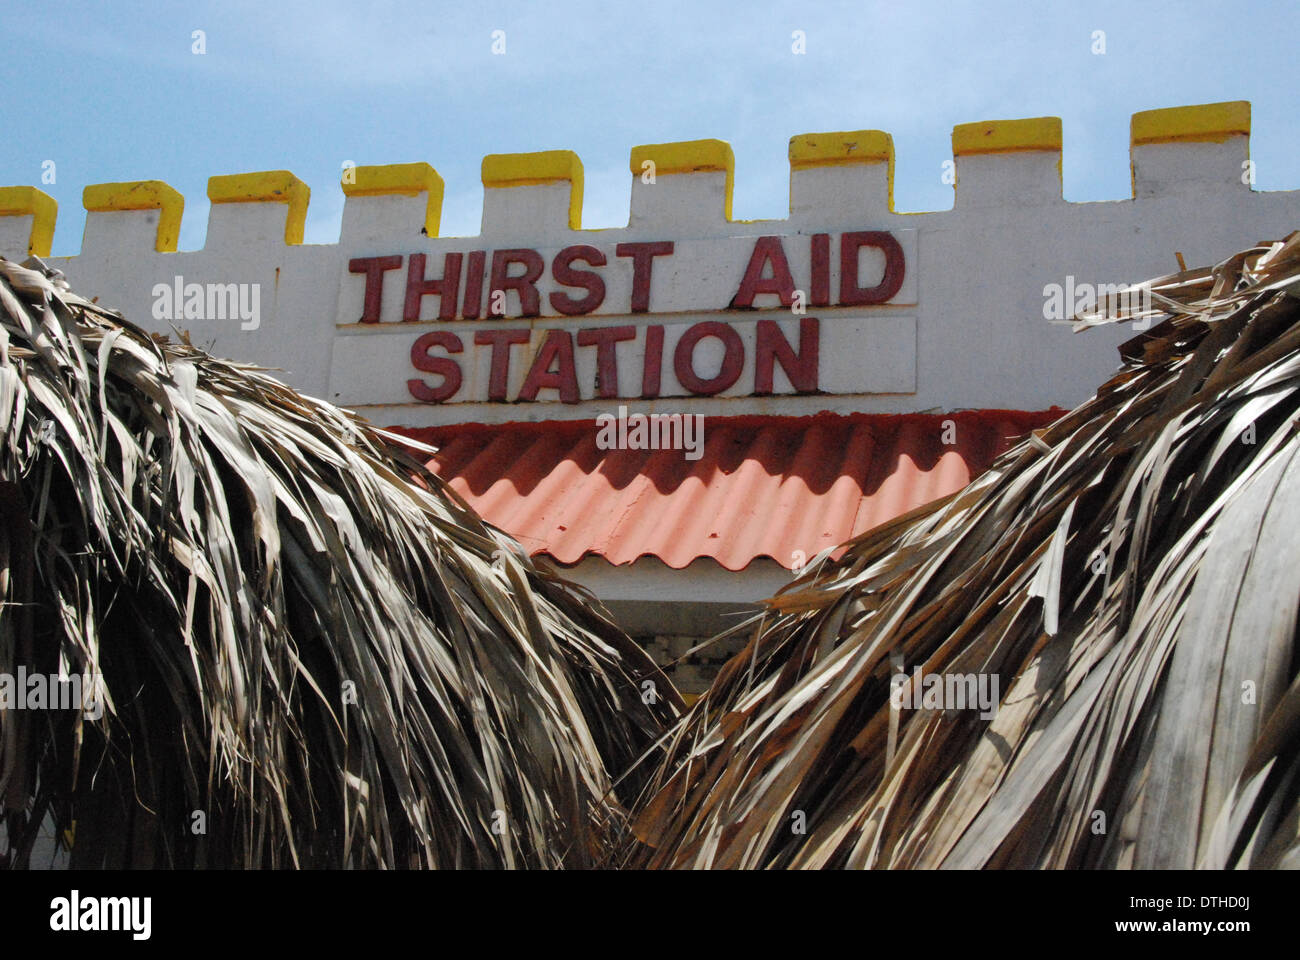 2009, Exterior view of a bar in Aruba, called the Thirst Aid Station, Aruba Island, Caribbean, Lesser Antilles. - Stock Image